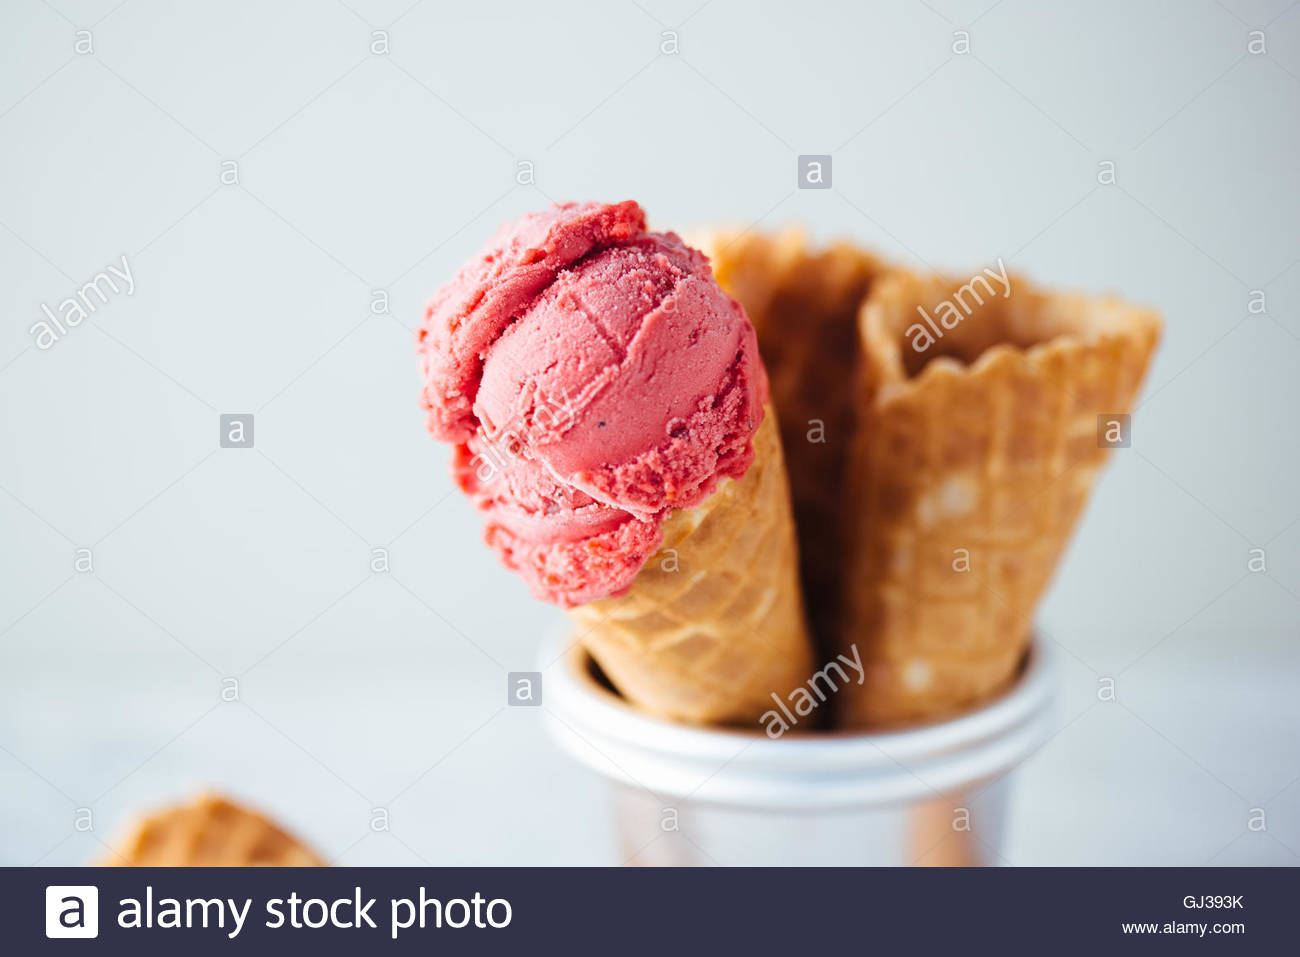 gelato stockfotos gelato bilder alamy. Black Bedroom Furniture Sets. Home Design Ideas